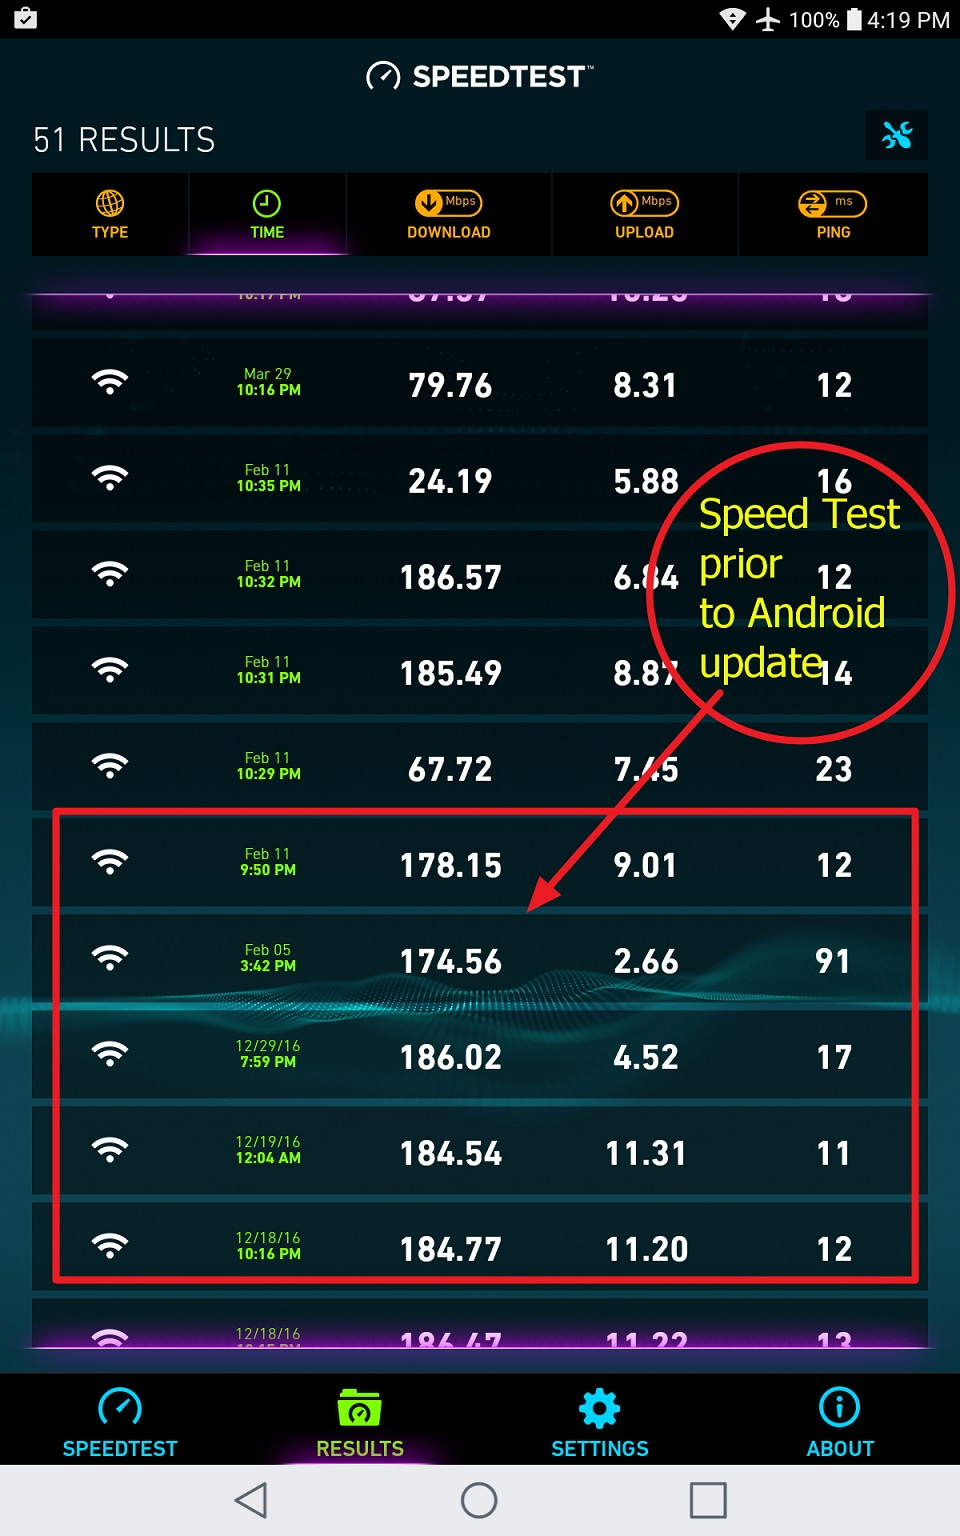 Solved: LG G Pad III 8 0 Model:V522 wifi 5Ghz/802 11ac iss